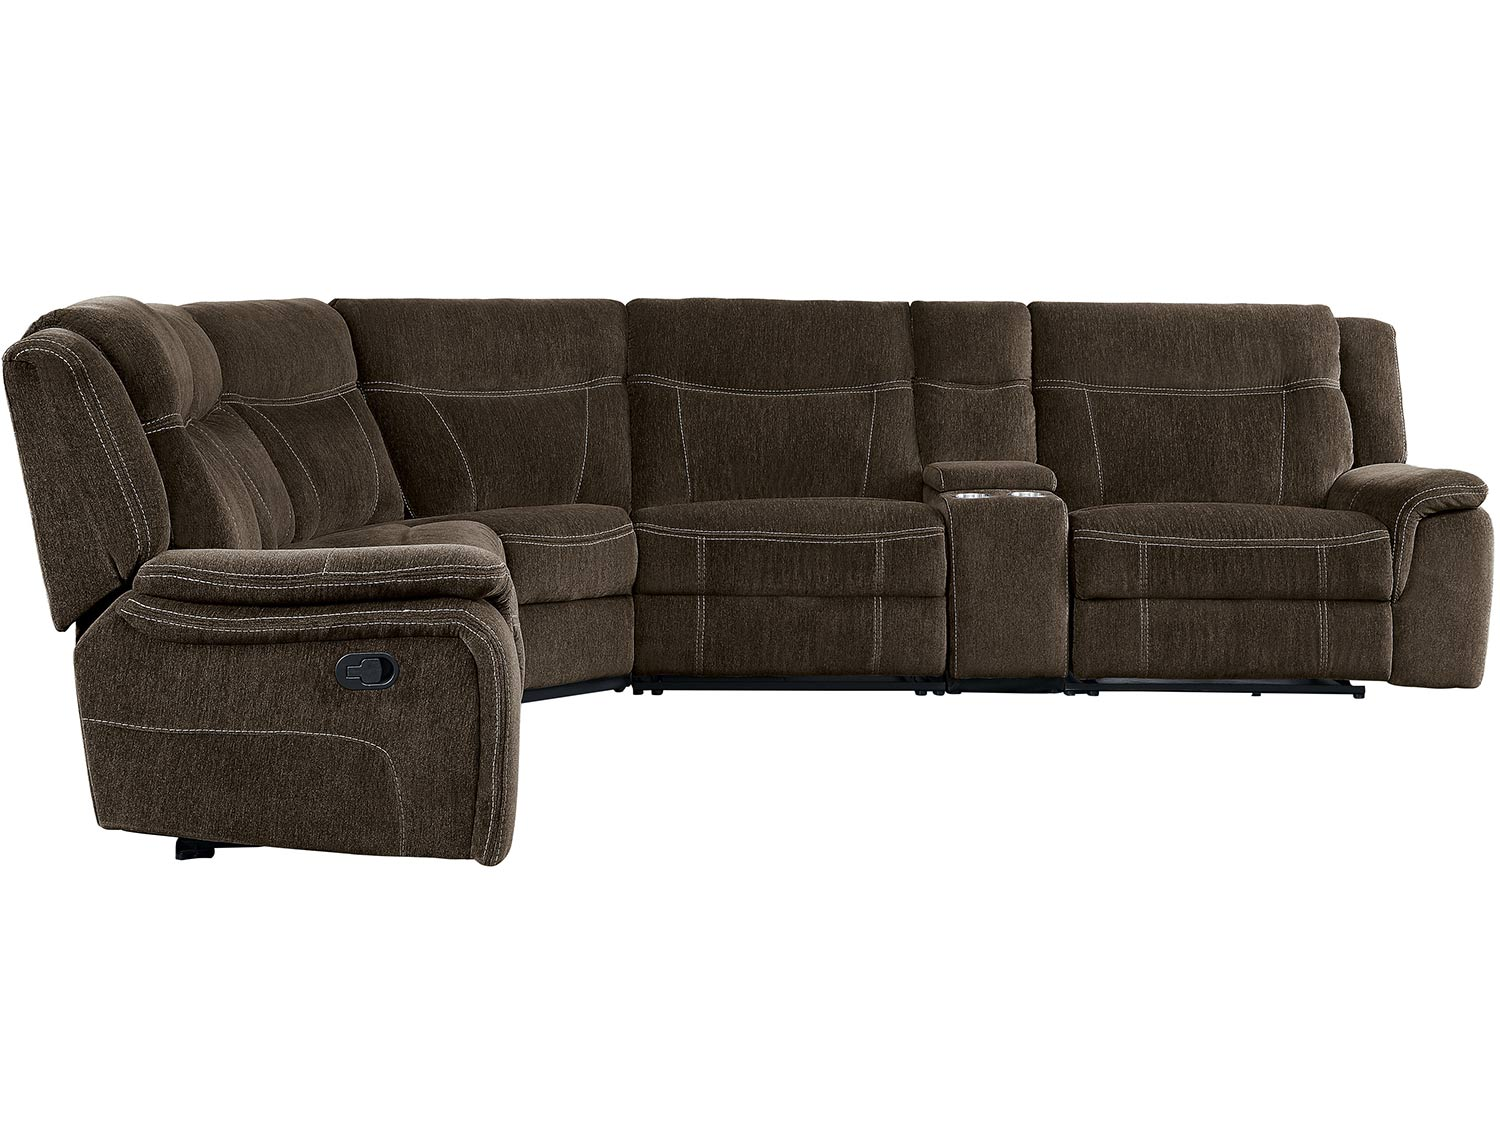 Homelegance Annabelle Reclining Sectional Sofa Set - Brown